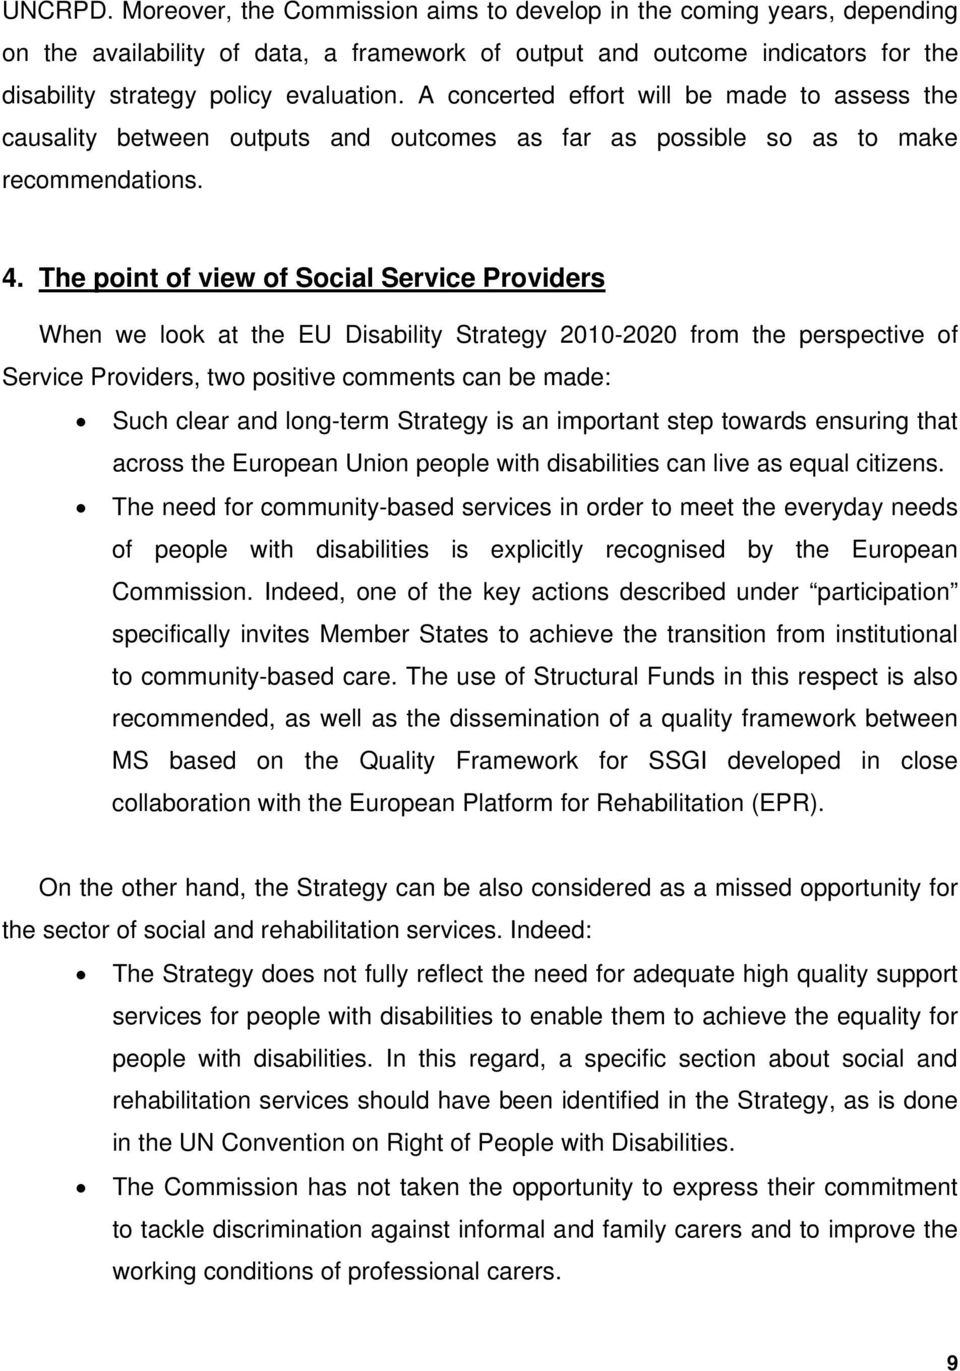 The point of view of Social Service Providers When we look at the EU Disability Strategy 2010-2020 from the perspective of Service Providers, two positive comments can be made: Such clear and